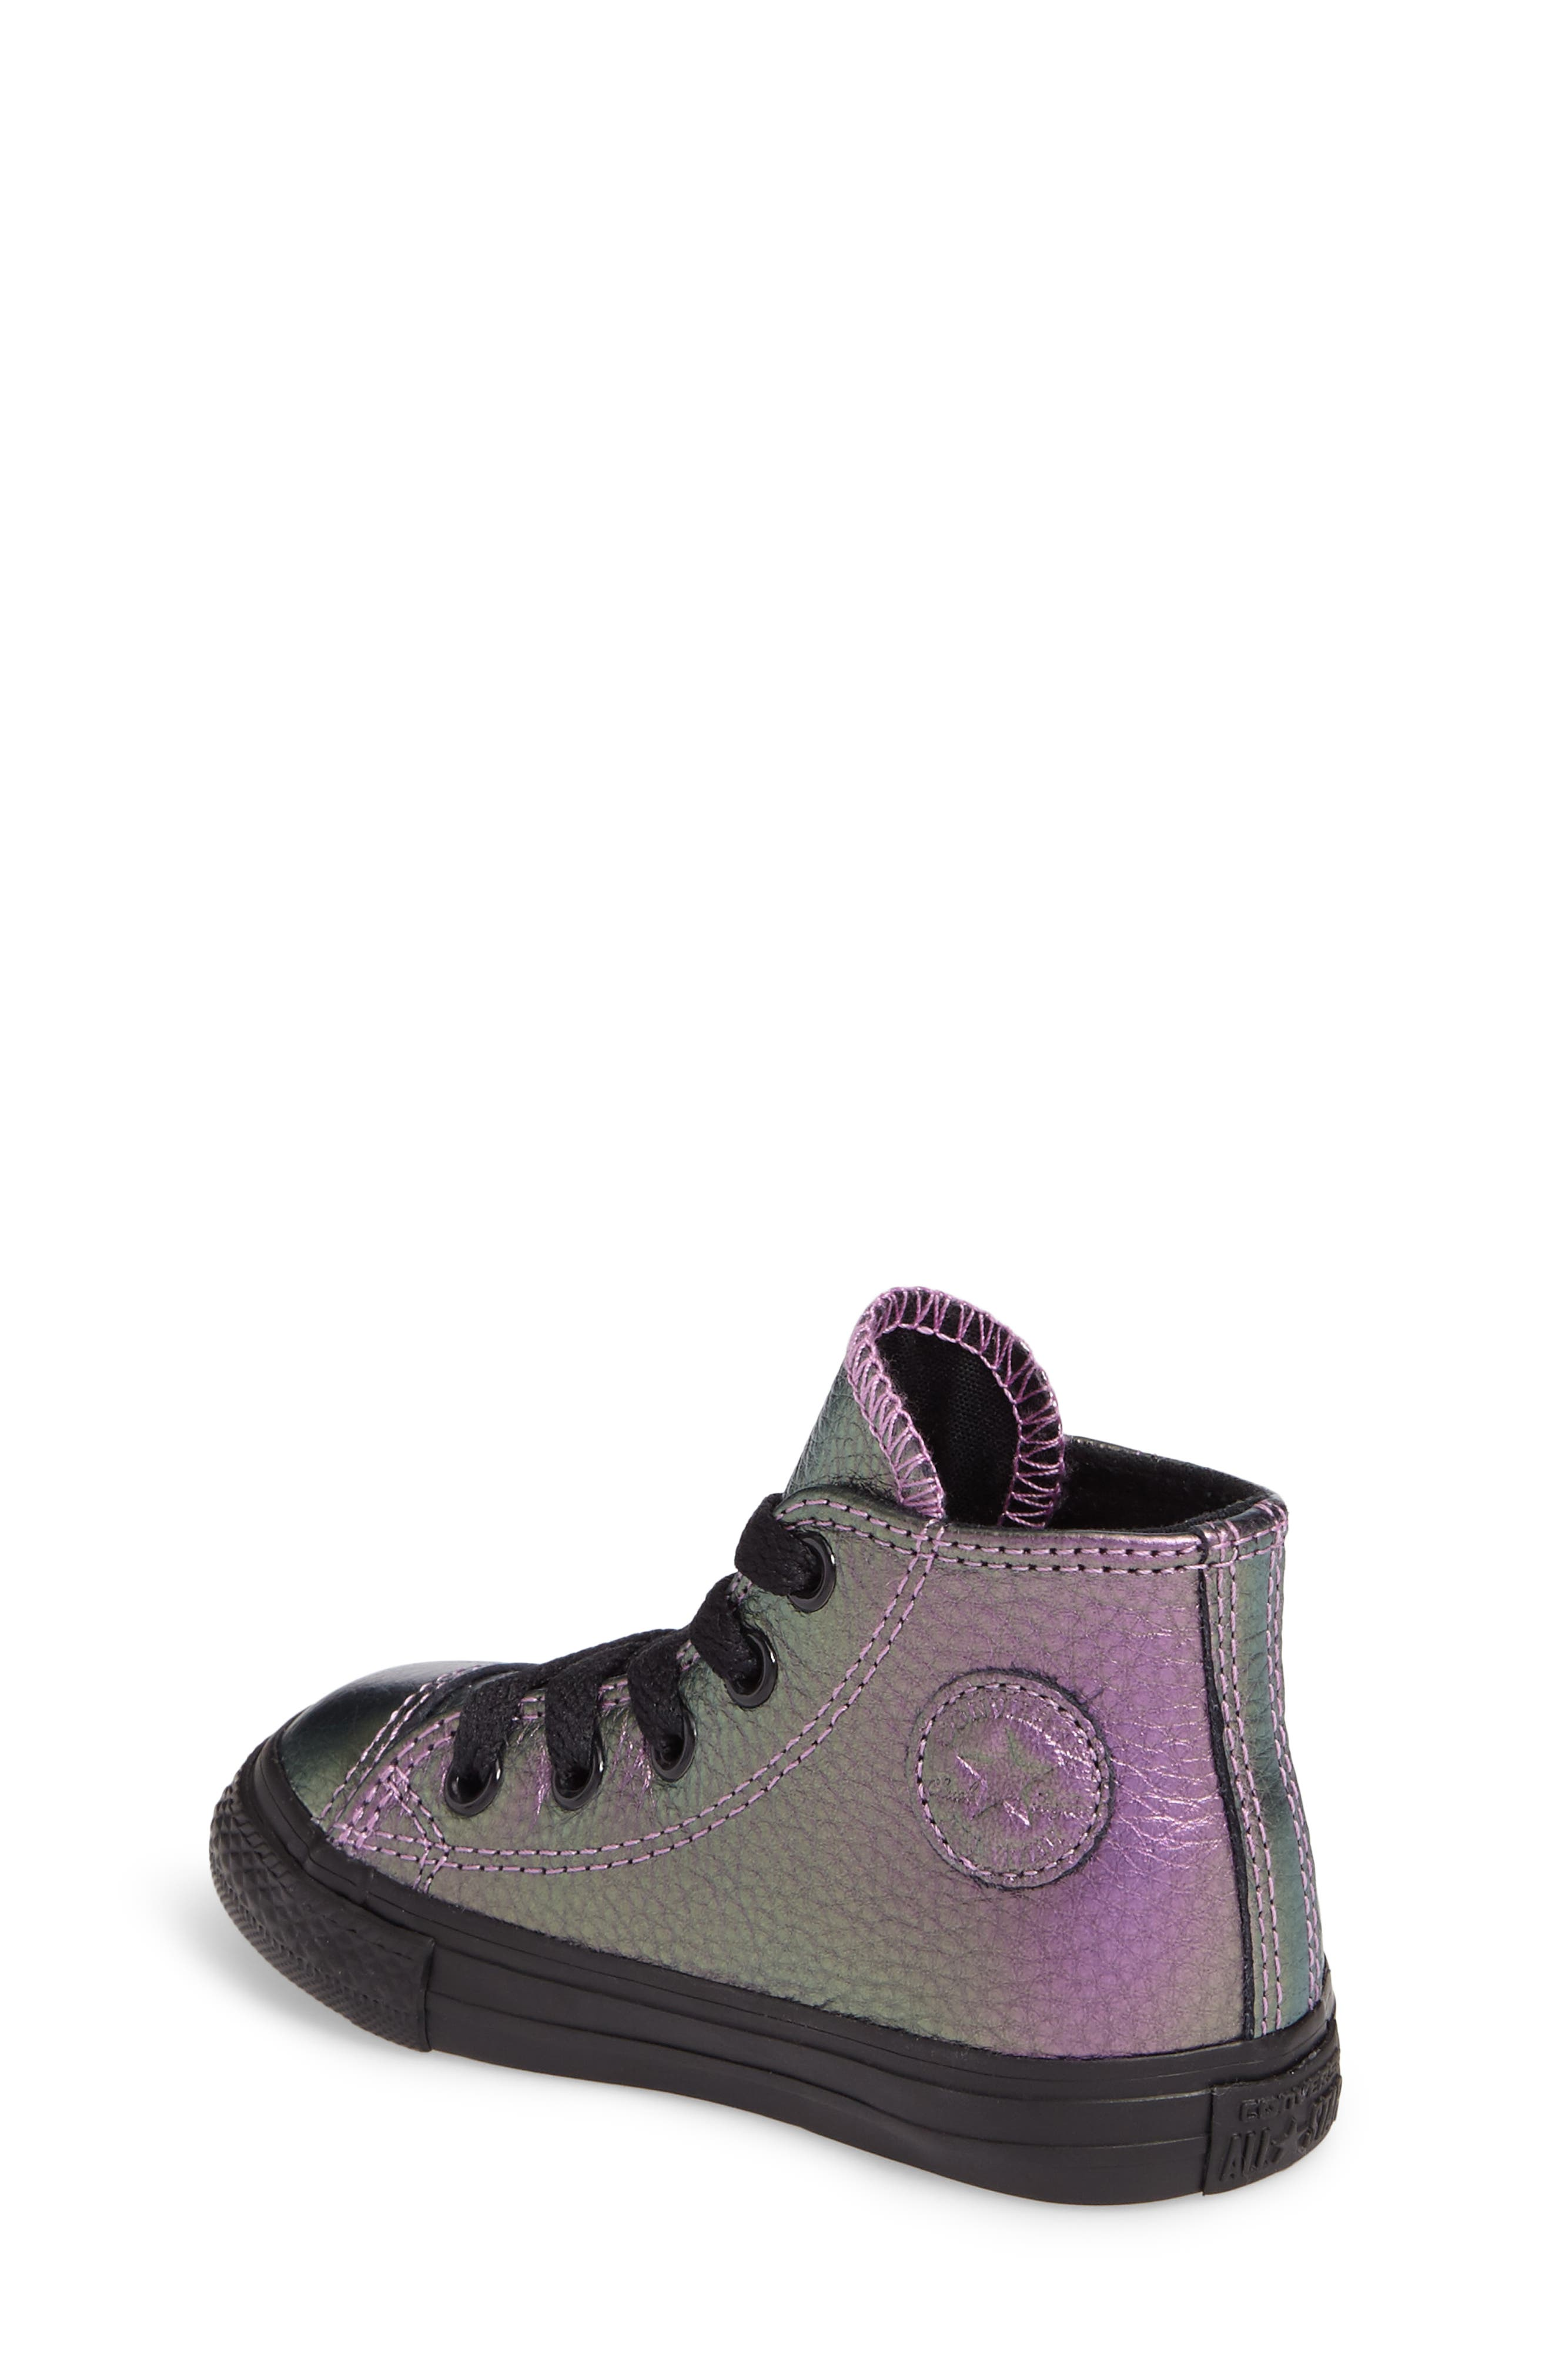 Alternate Image 2  - Converse Chuck Taylor® All Star® Iridescent Leather High Top Sneaker (Baby, Walker, Toddler & Little Kid)